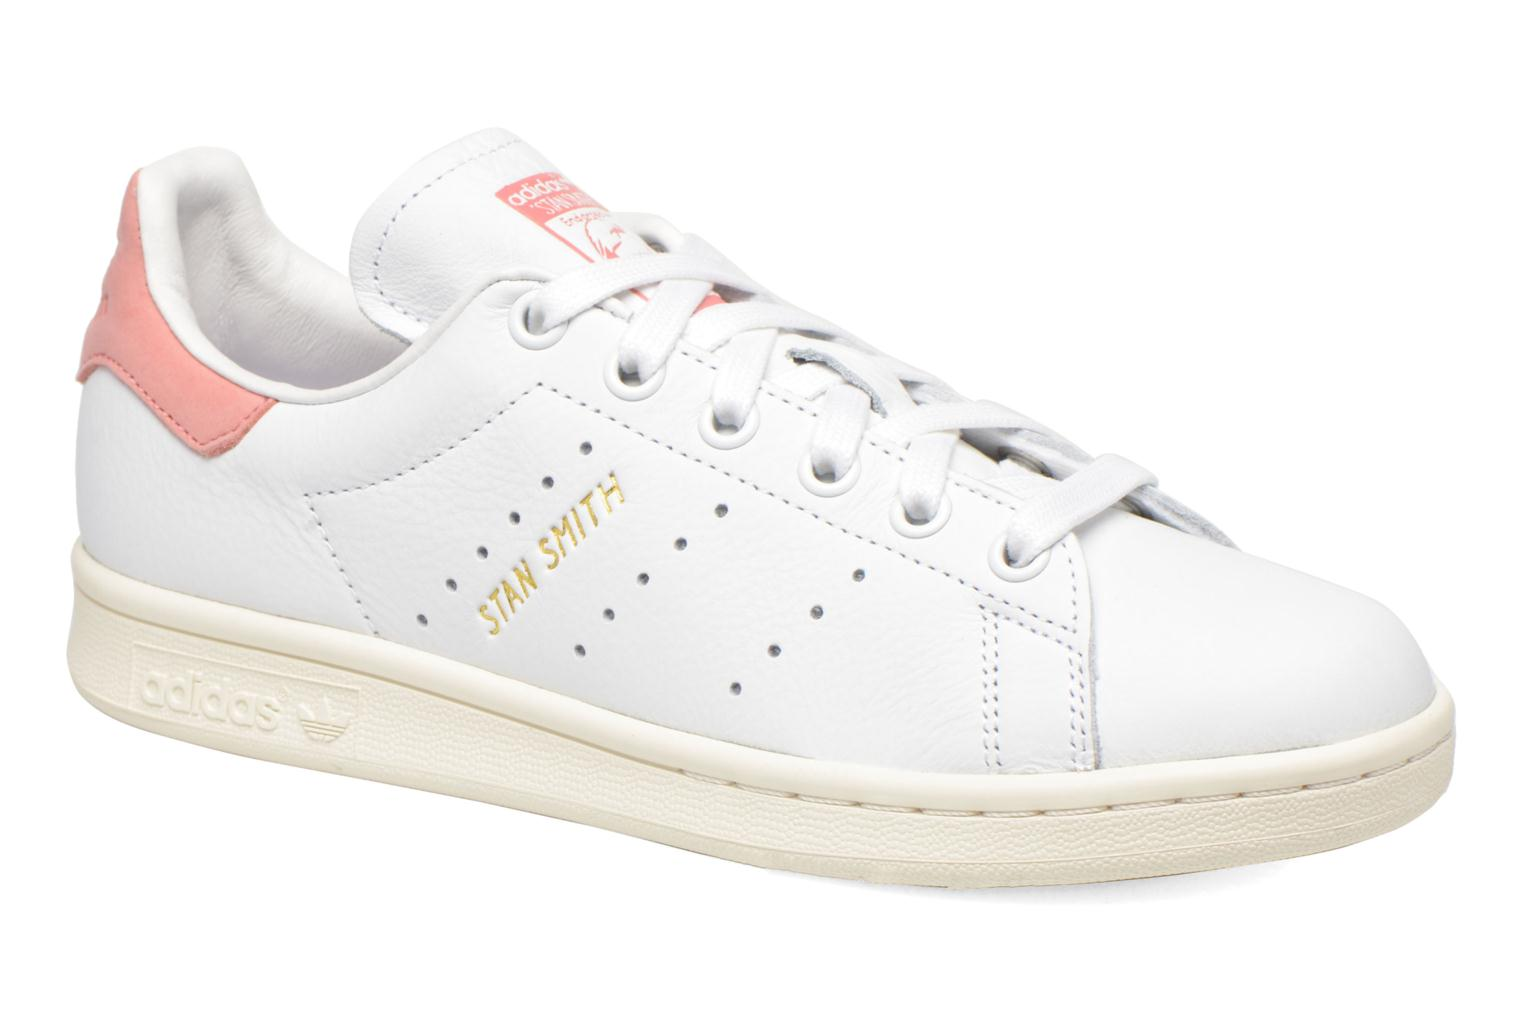 Stan Smith W Ftwbla/Ftwbla/Rosray